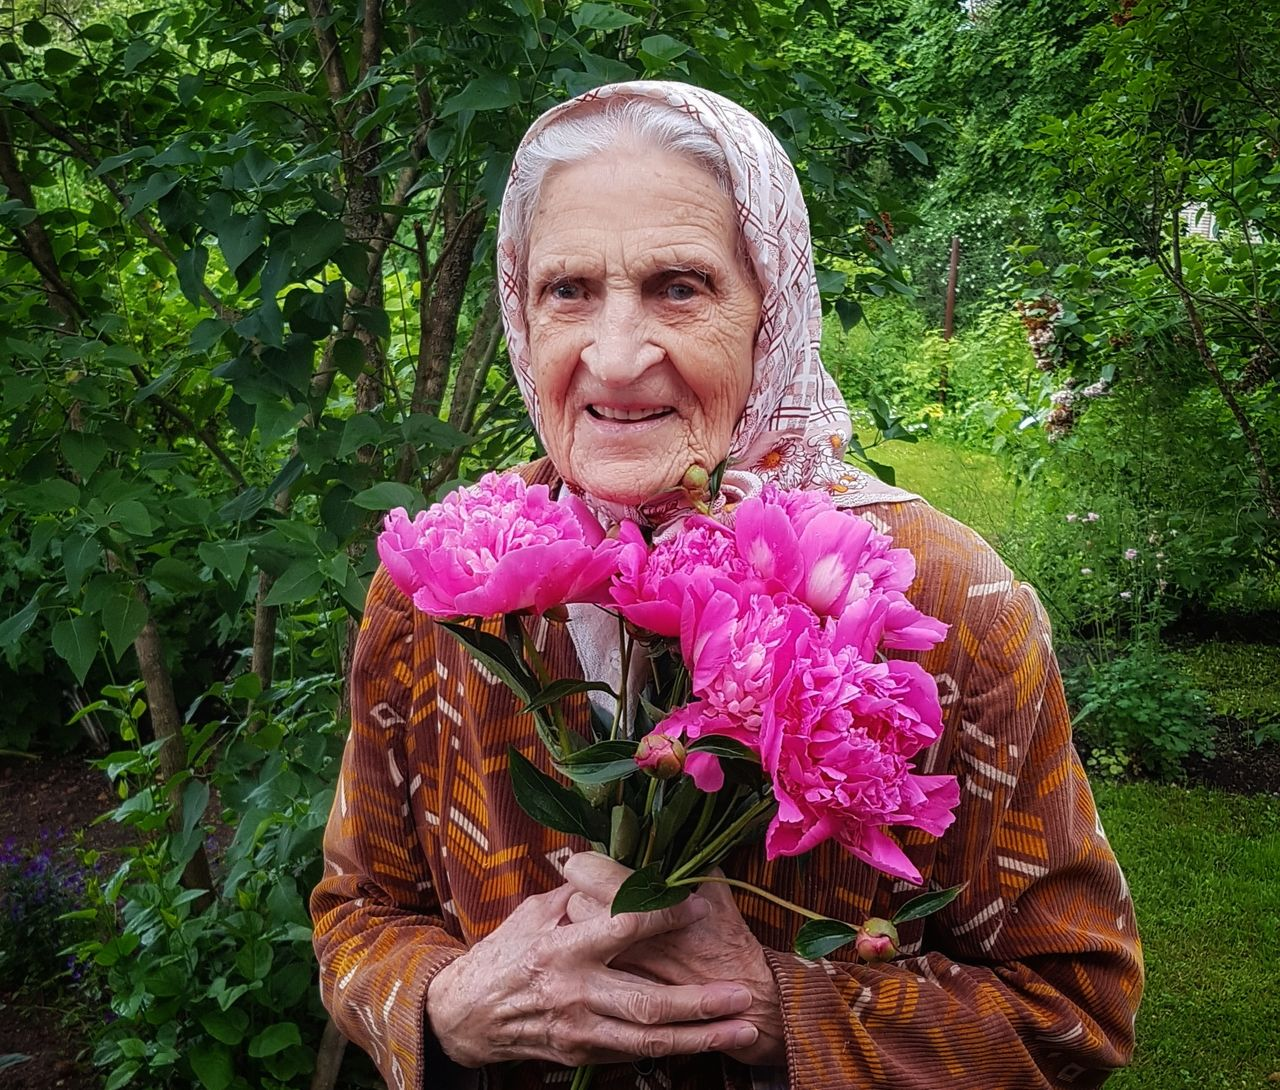 Portrait Of Senior Woman With Pink Flowers At Park